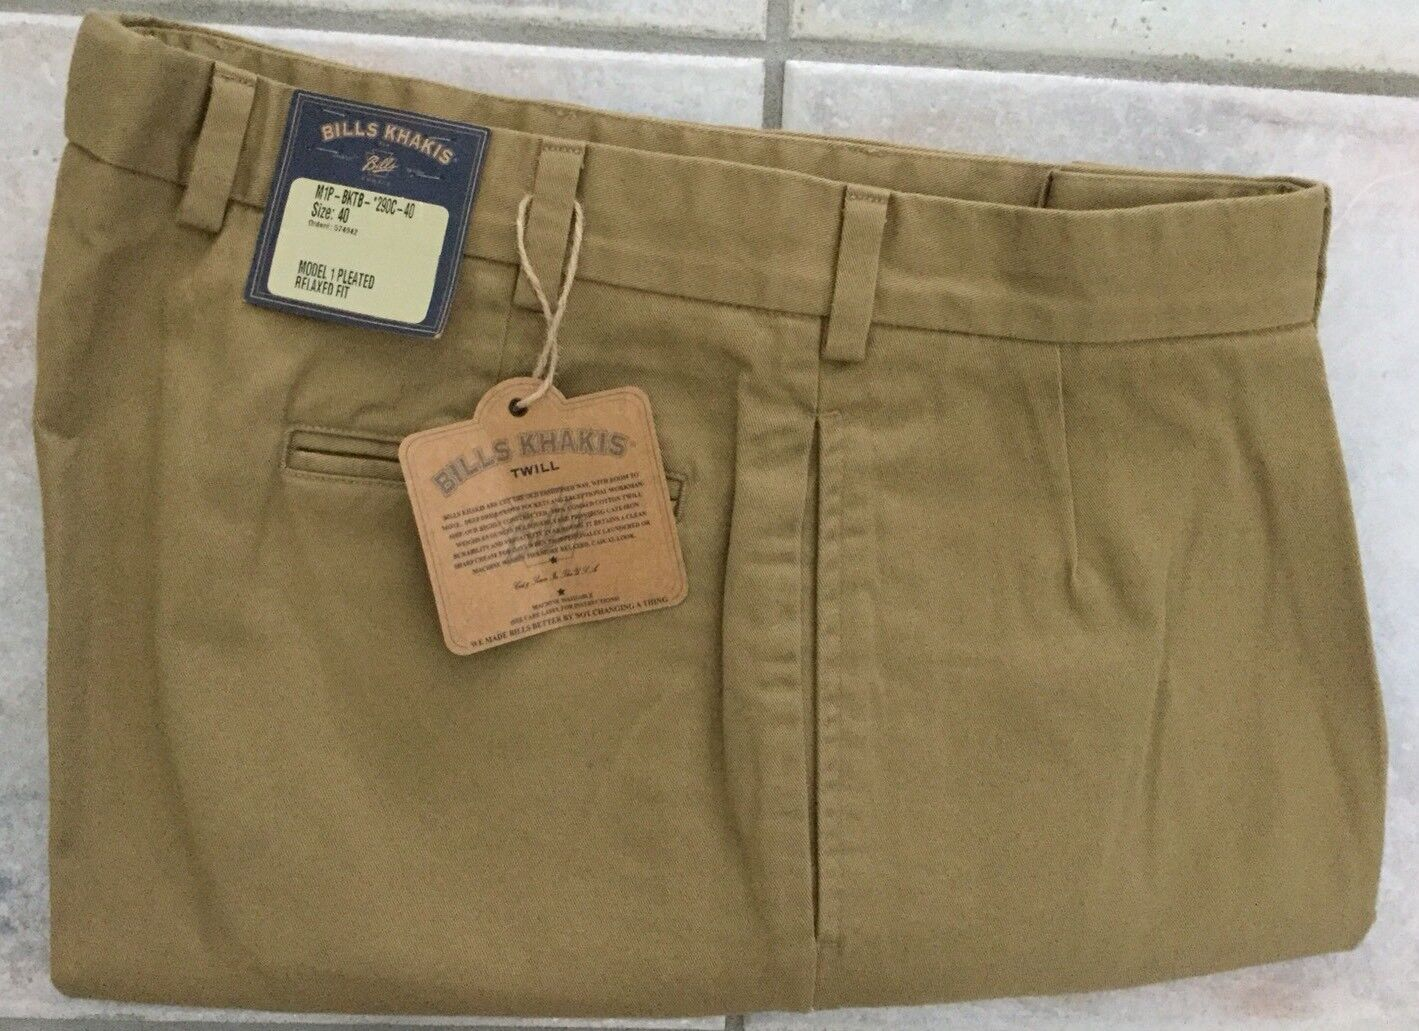 NWT-Bills khakis M1P-BKTB Cuffed Size 35X32 Heavy Cotton BRITISH KHAKI